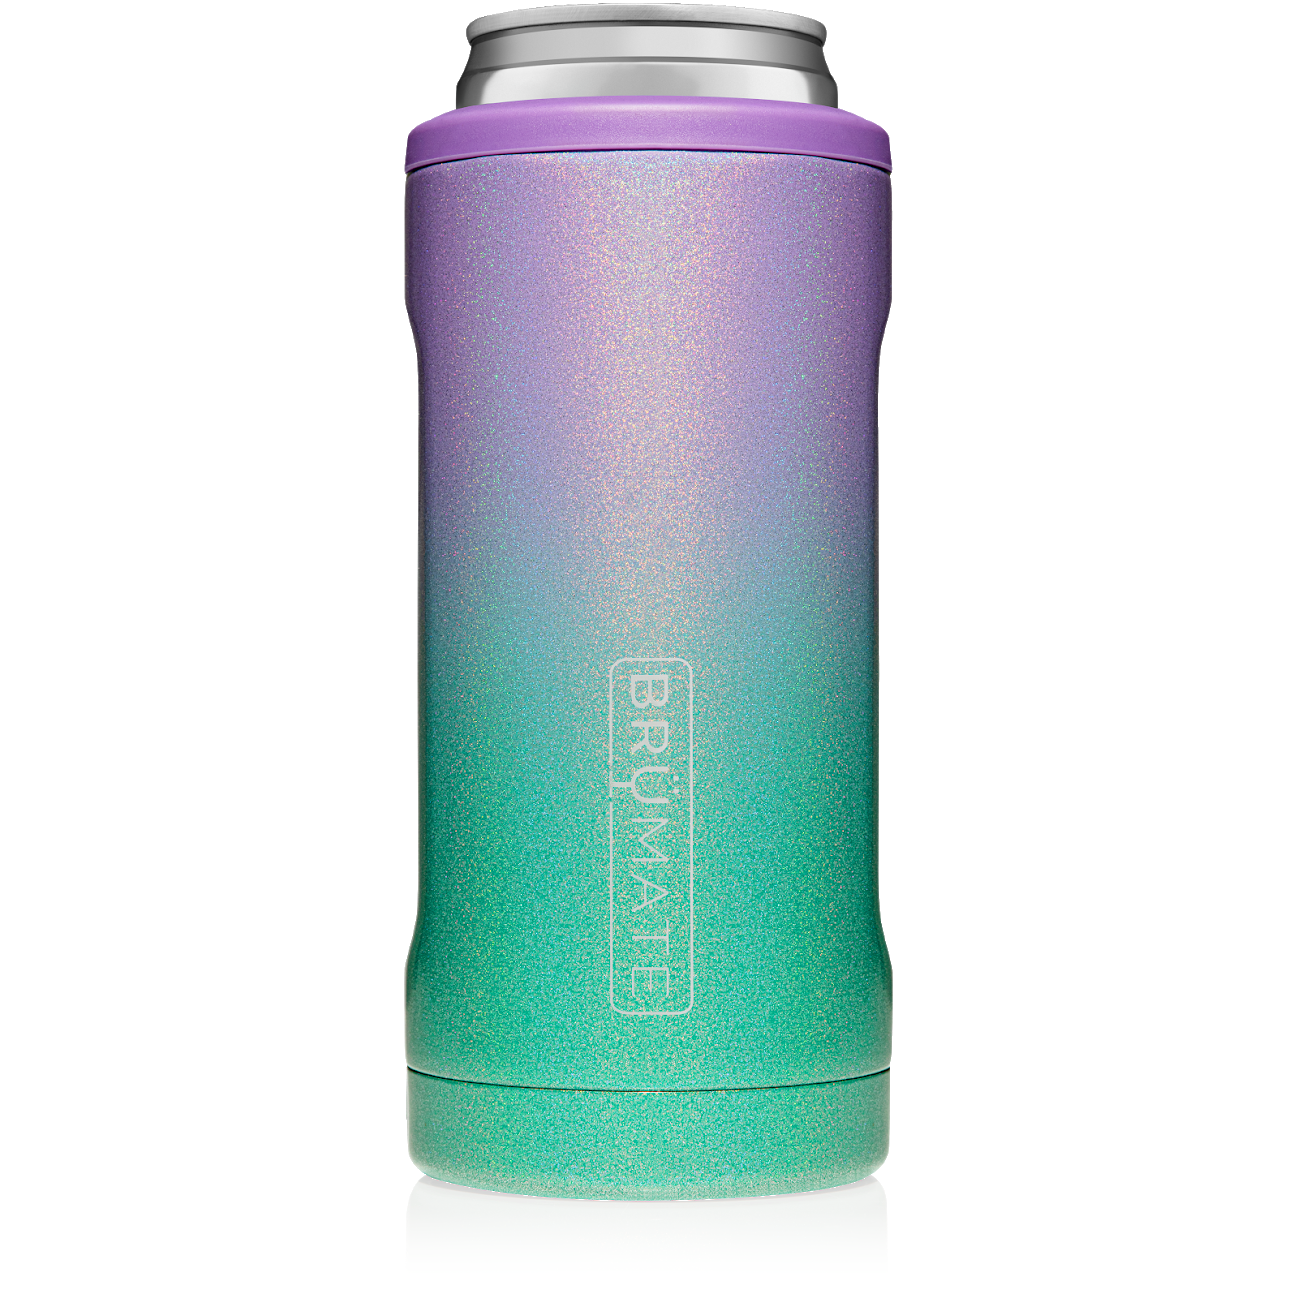 HOPSULATOR SLIM (12OZ SLIM CANS) - Glitter Mermaid